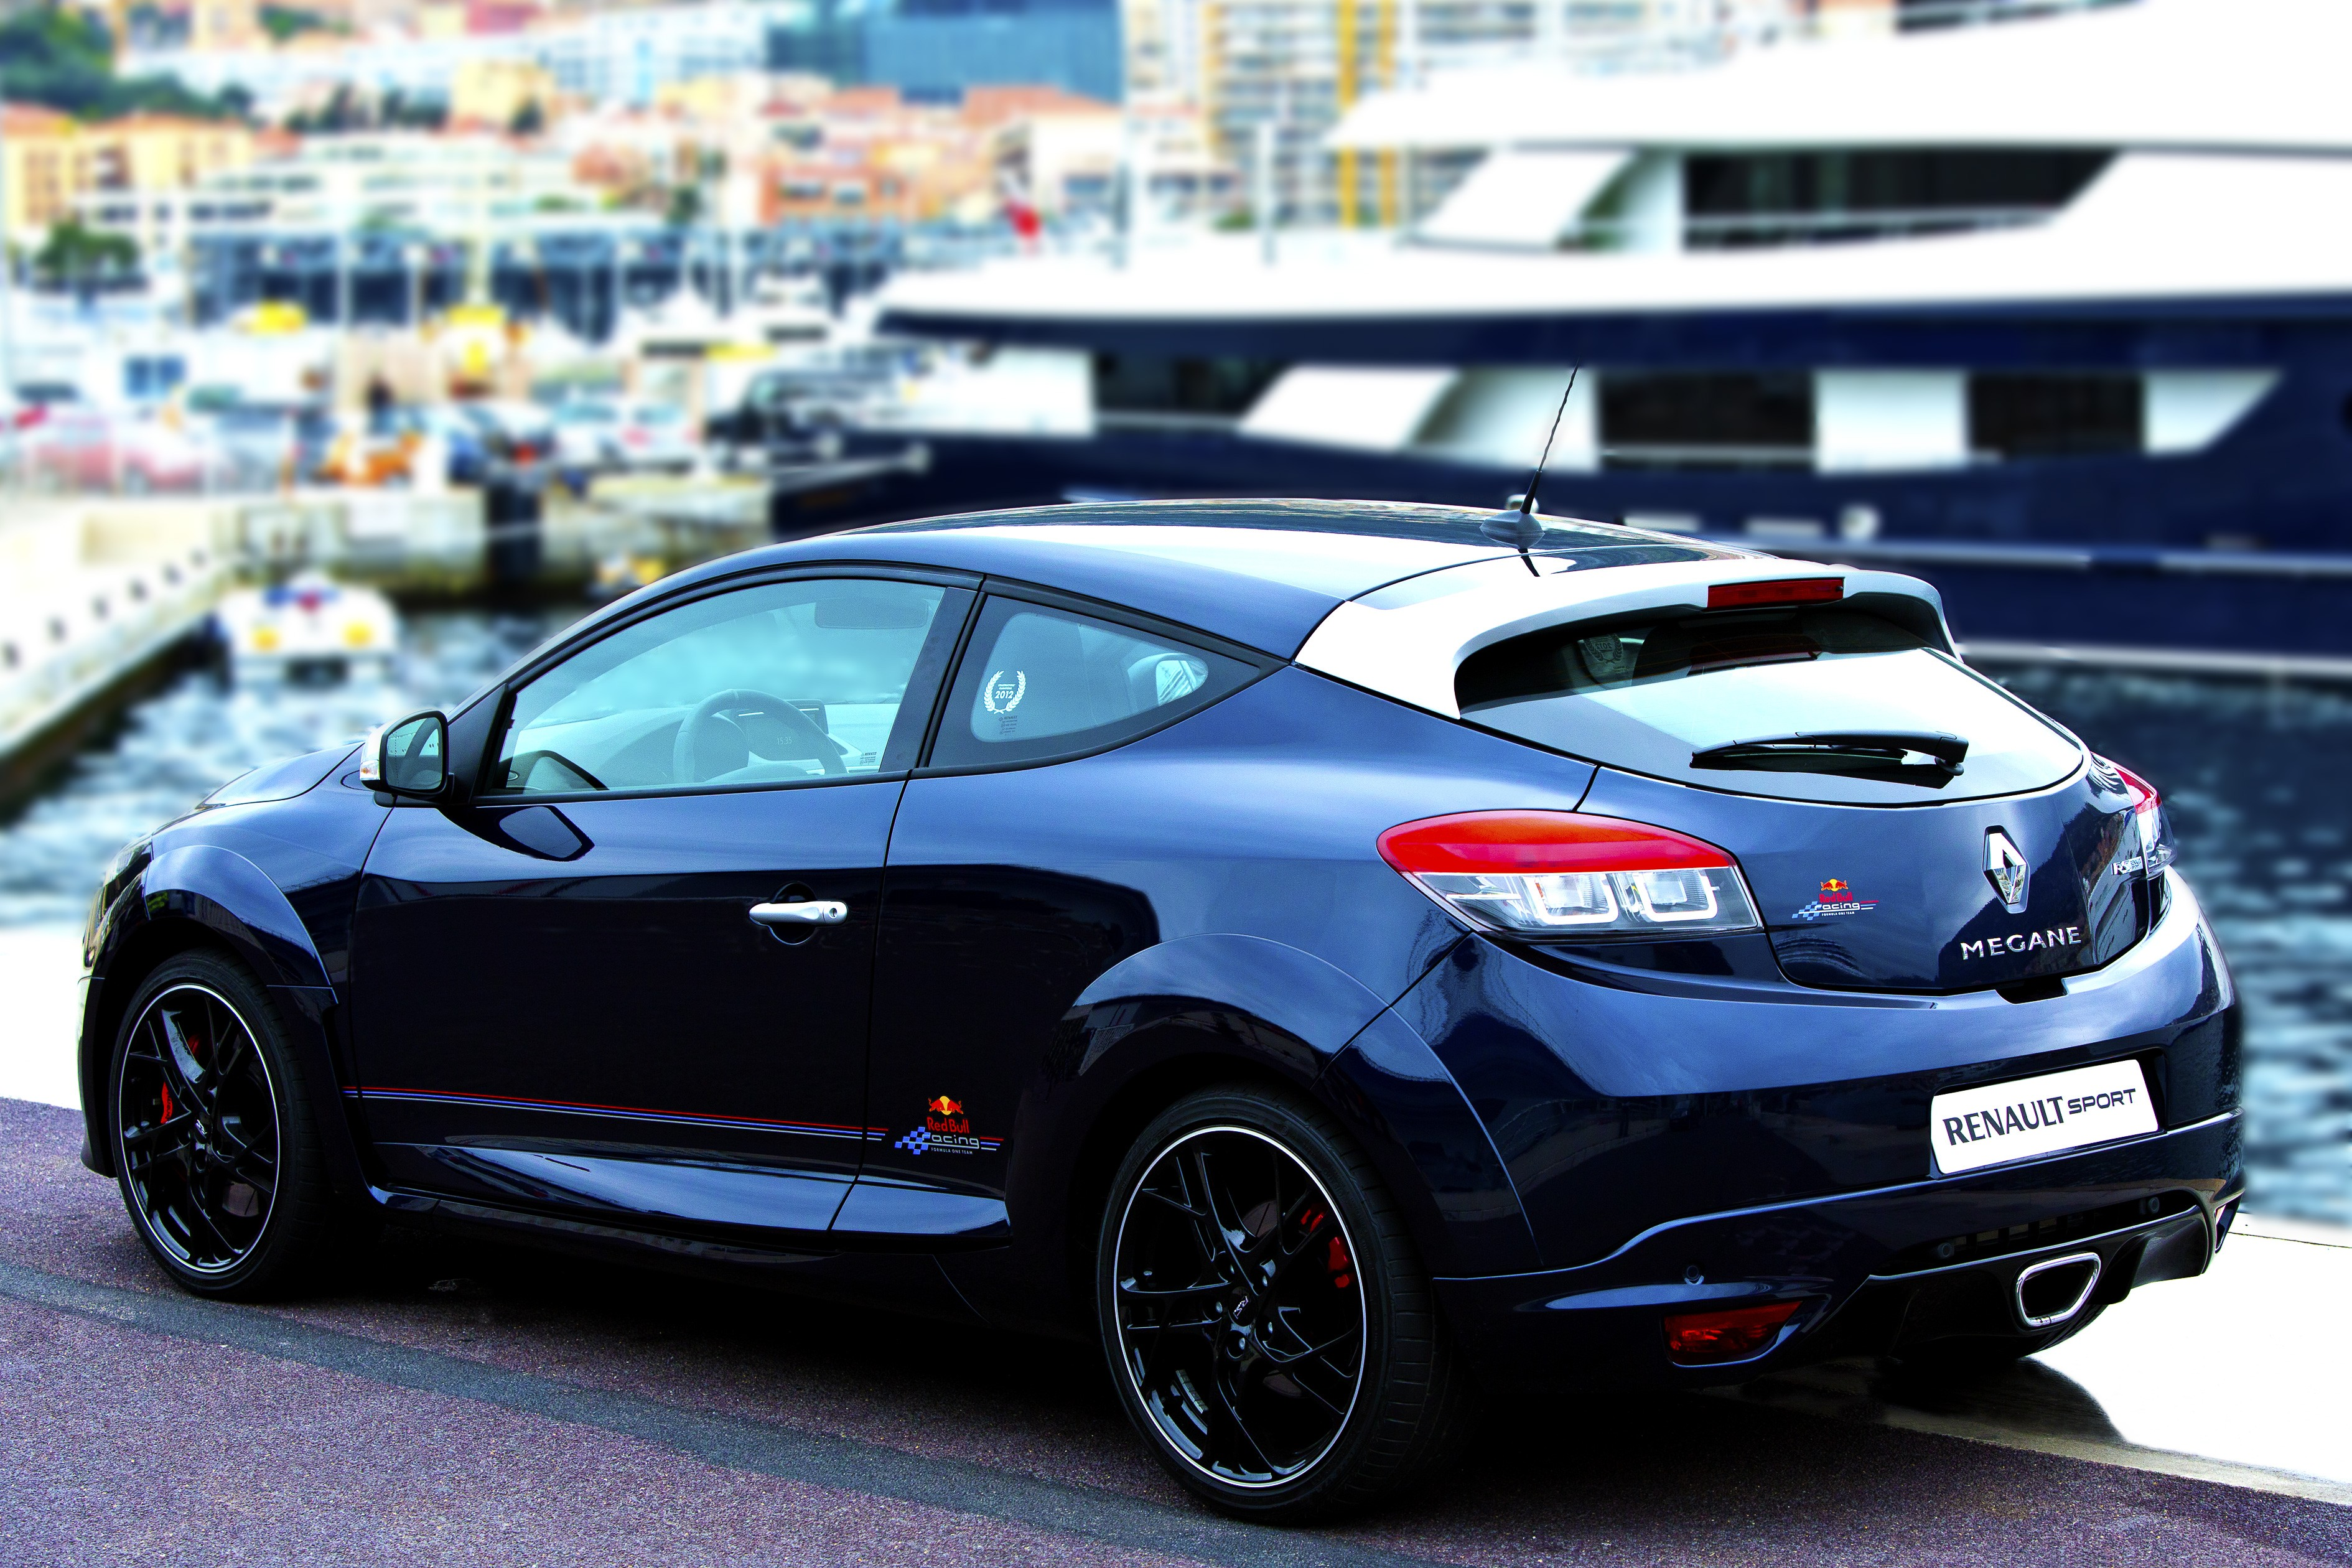 Nouvelle renault m gane rs red bull racing rb8 36000 euros - Nouvelle grille indiciaire gendarmerie ...